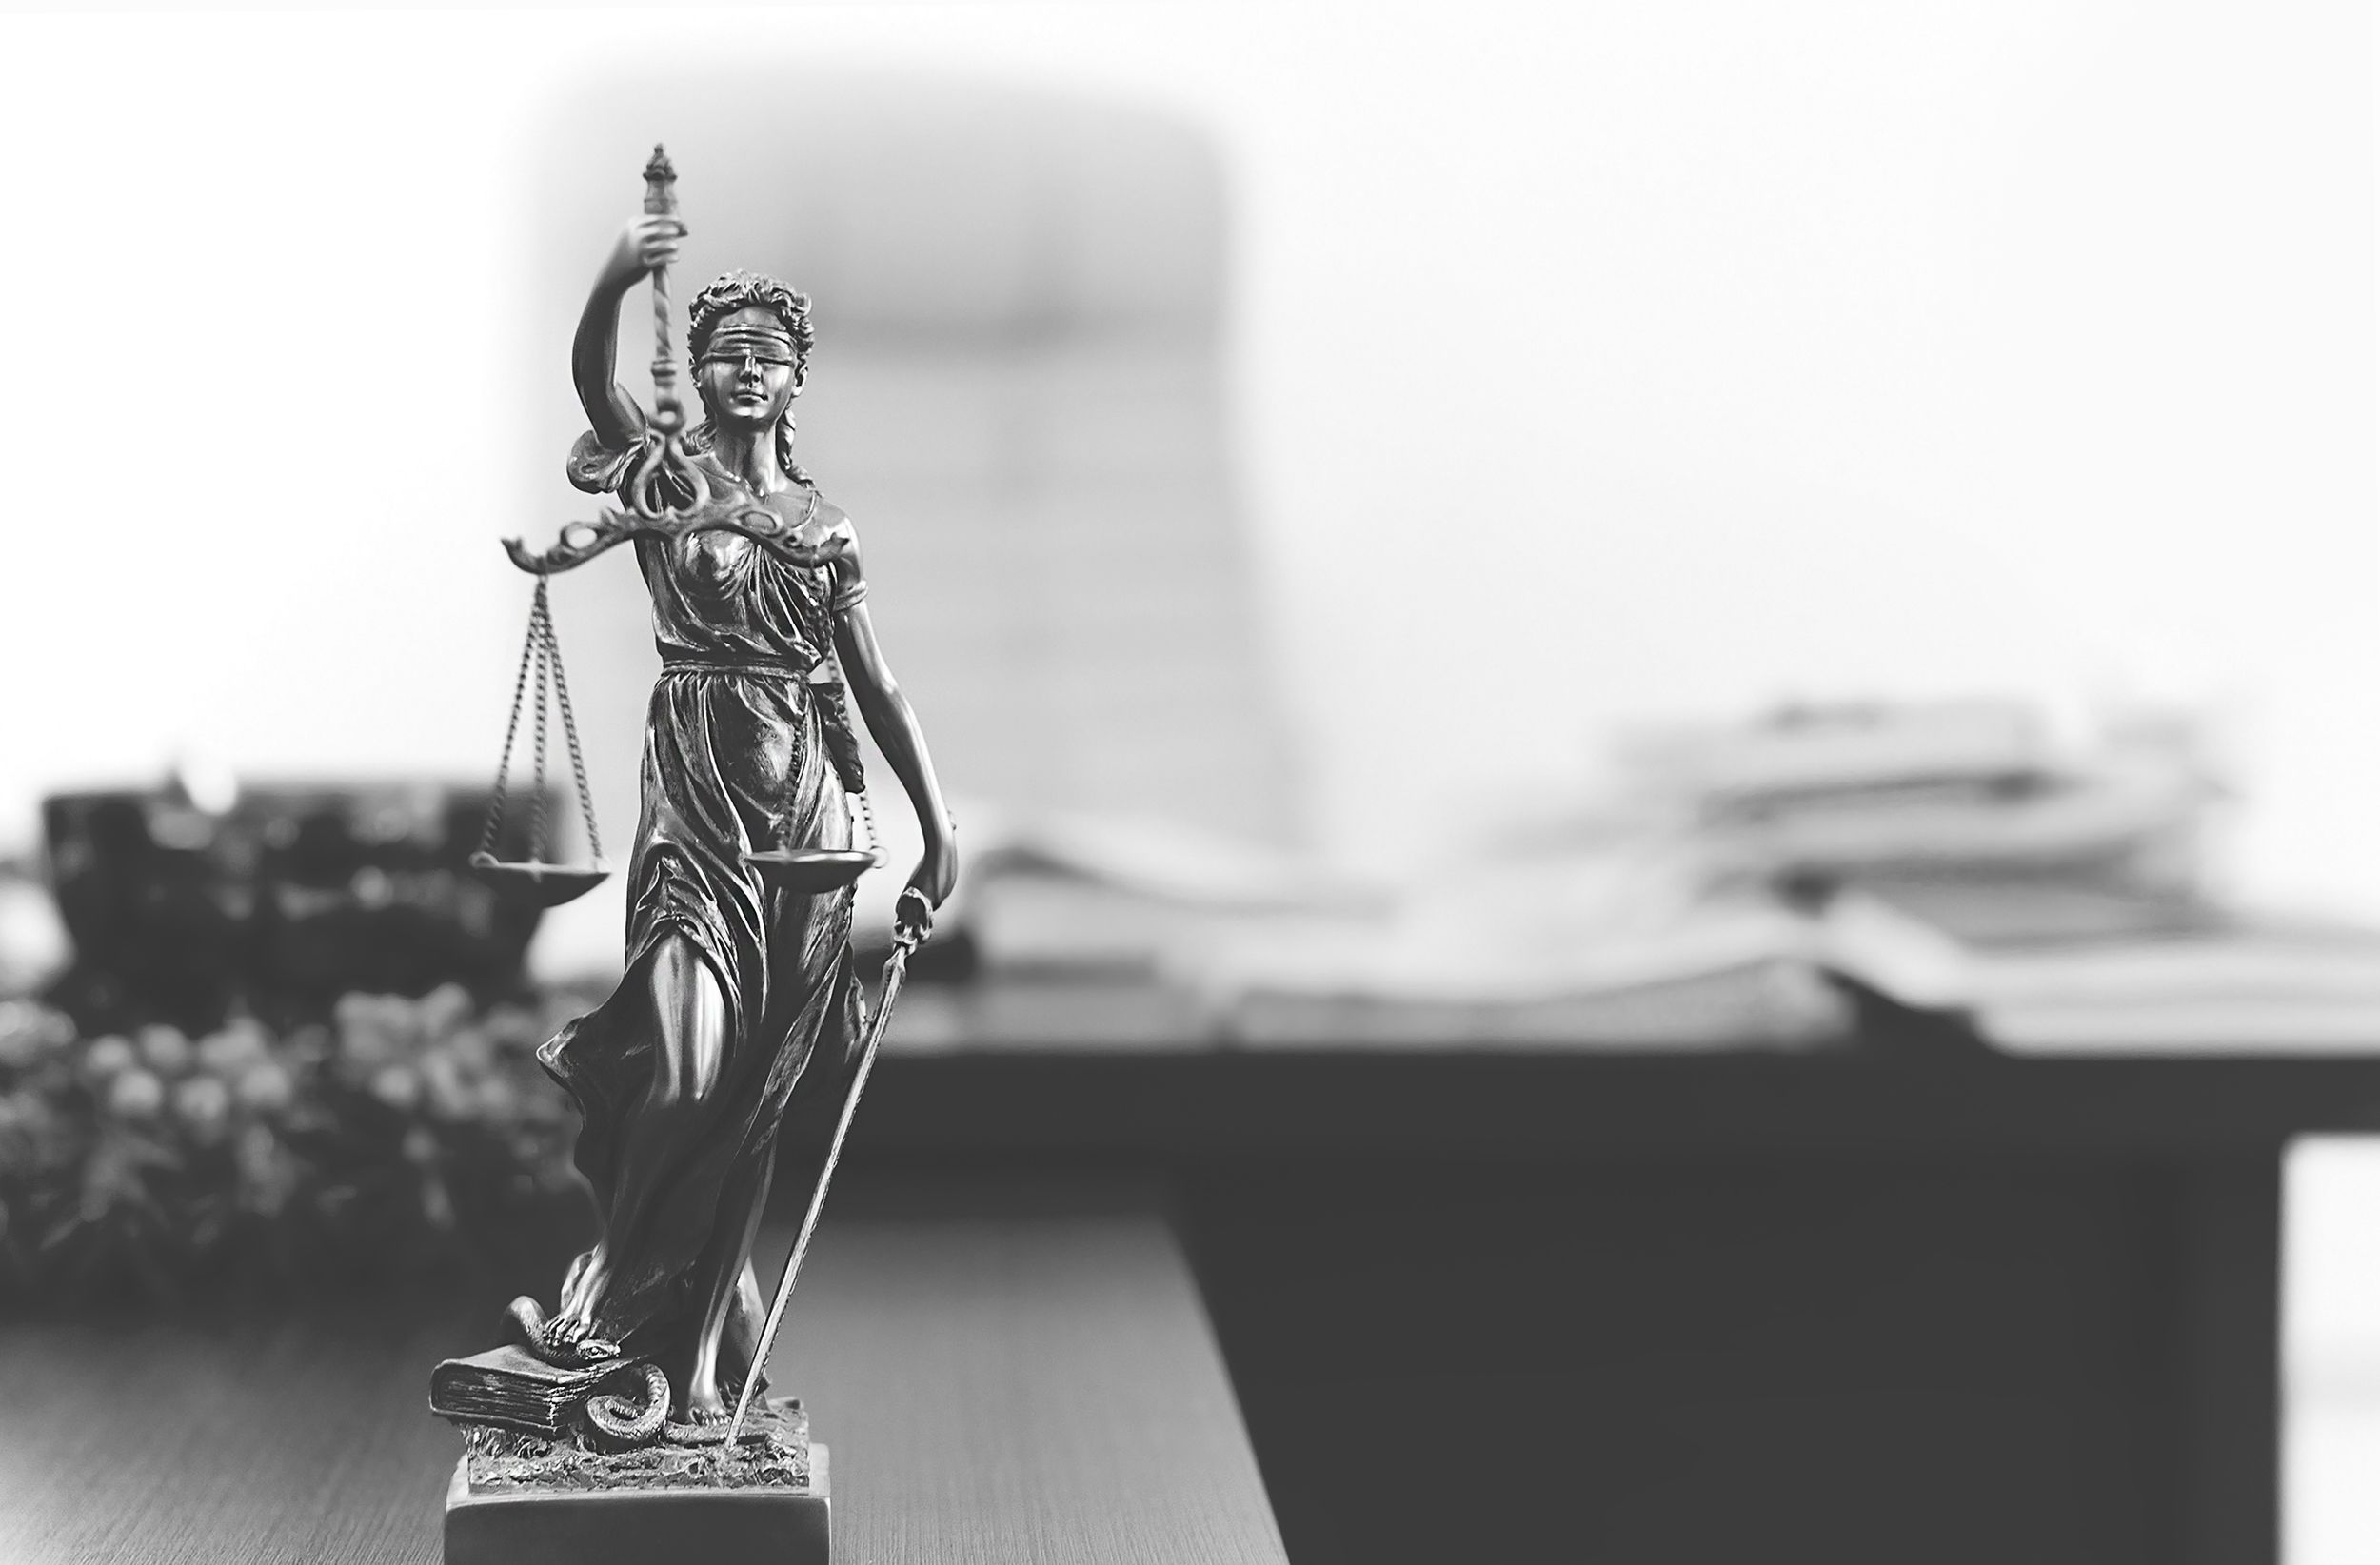 A figurine of Lady Justice